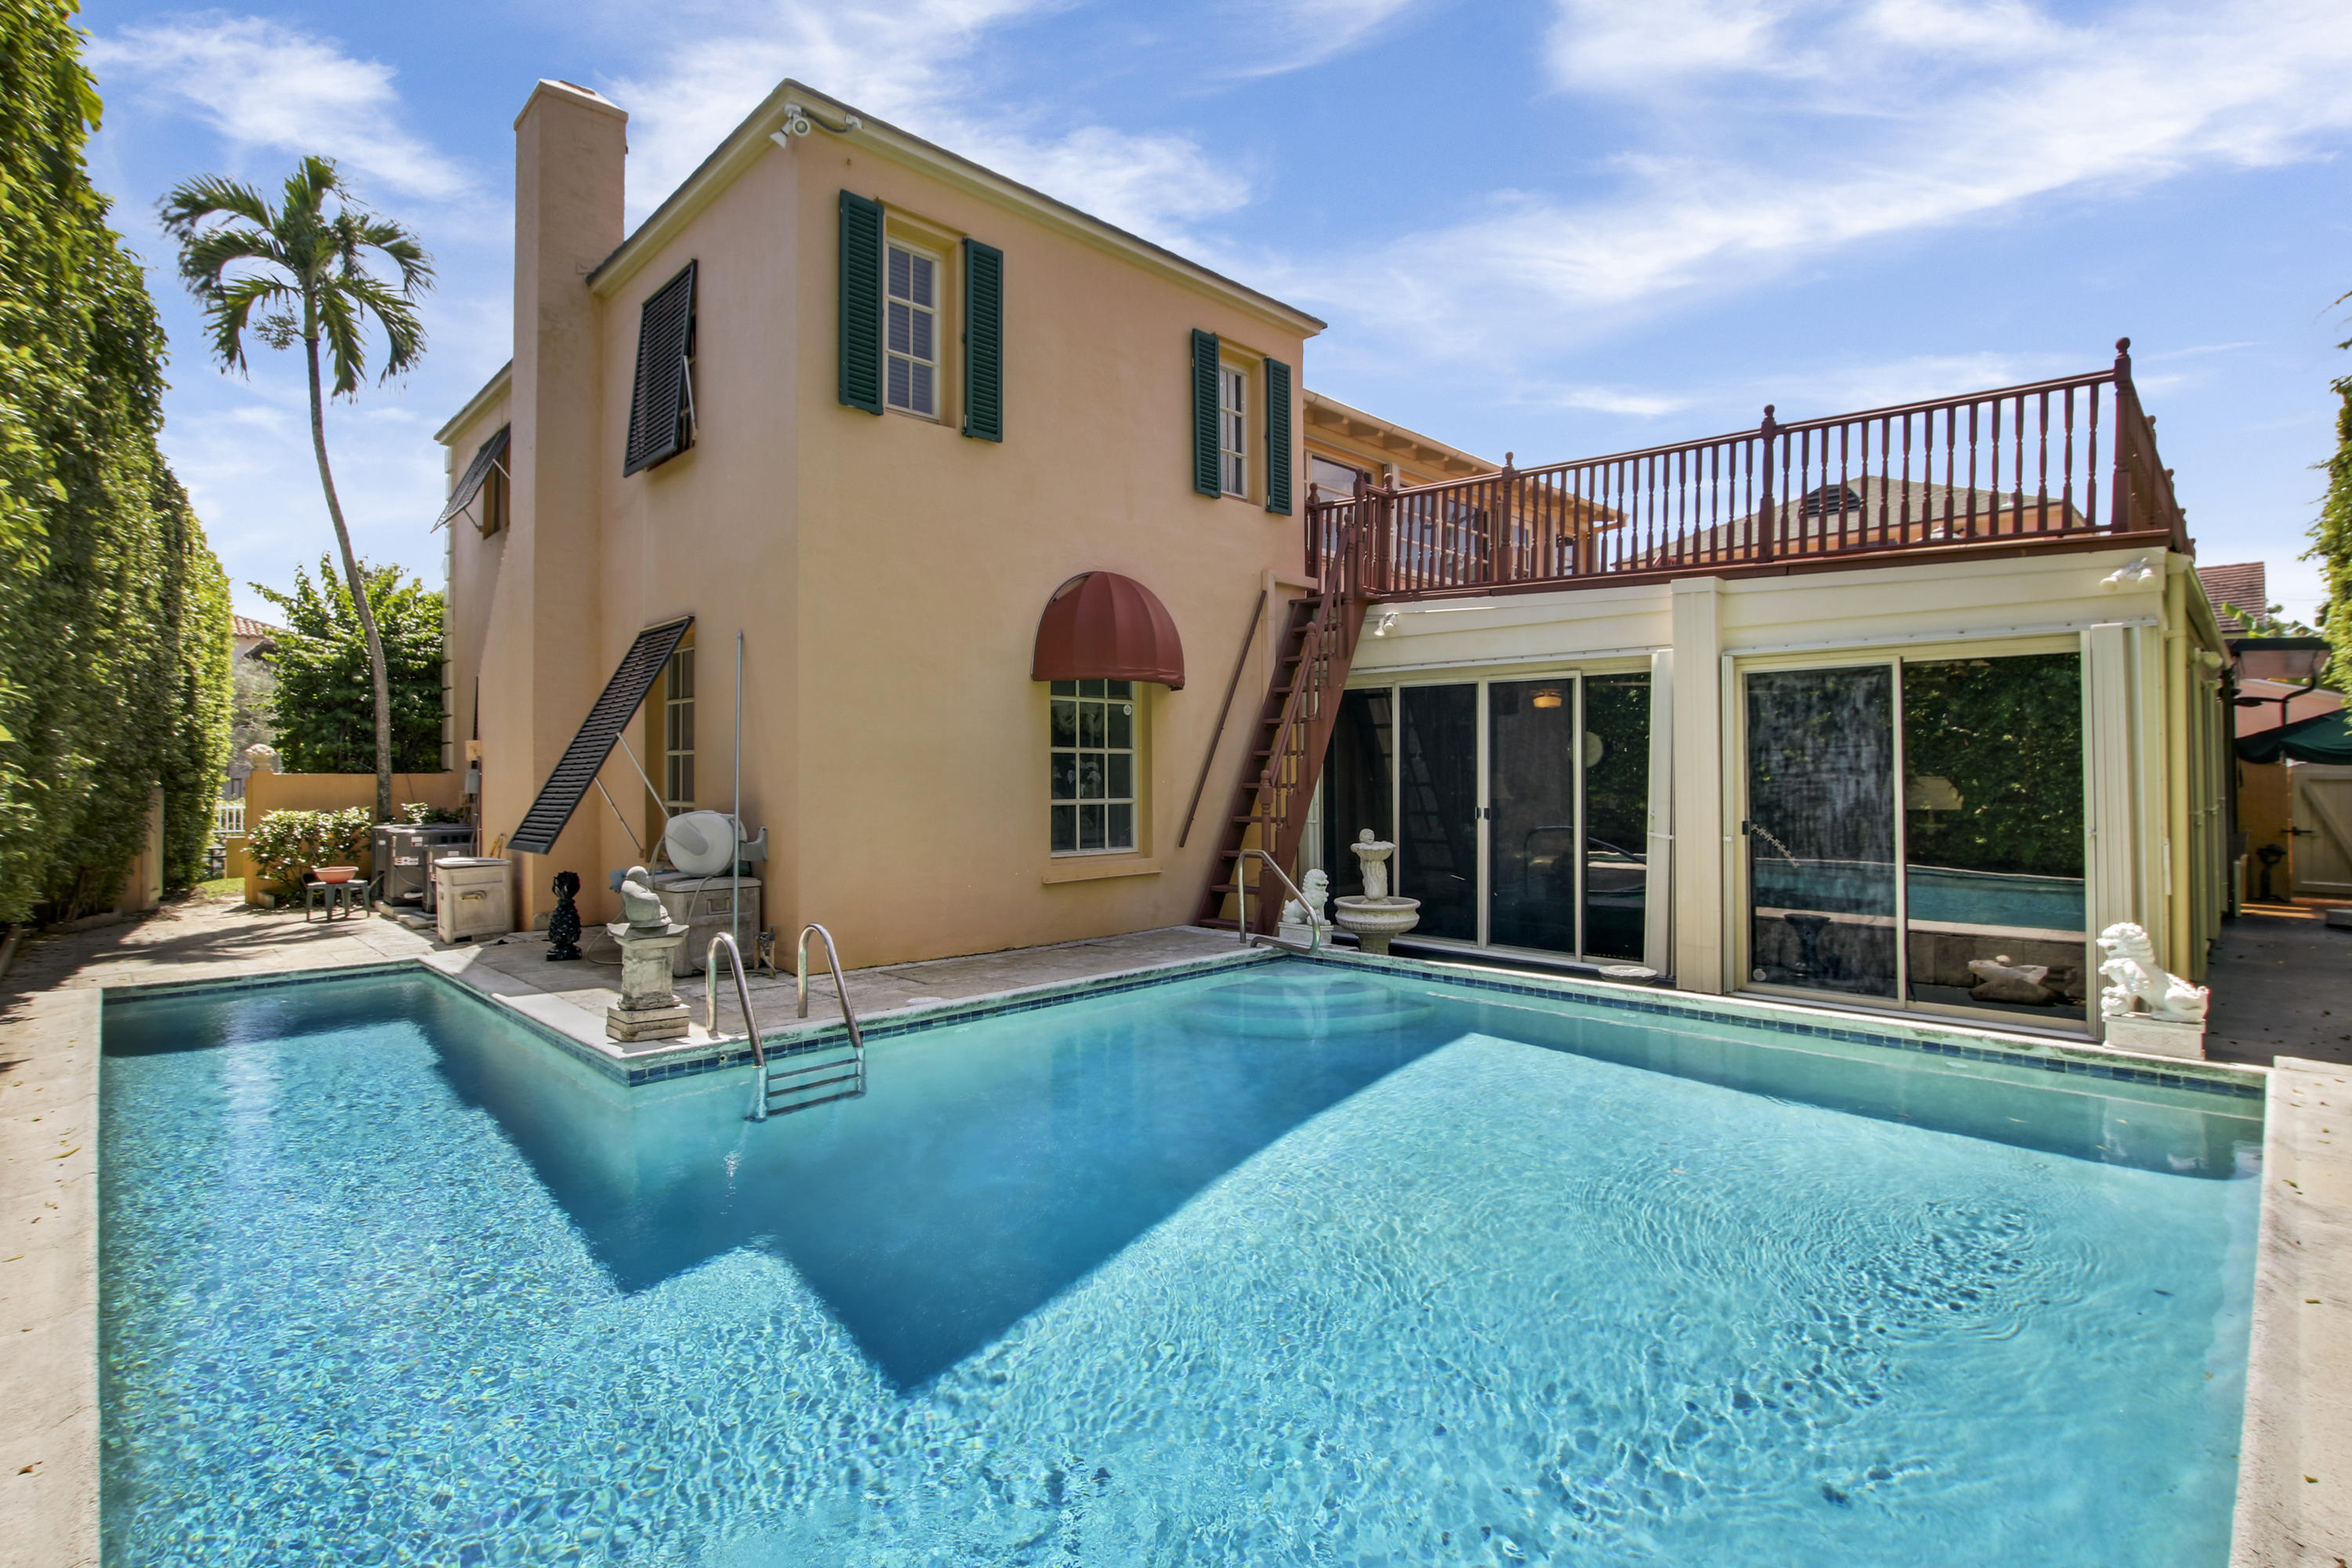 POINCIANA PARK HOMES FOR SALE